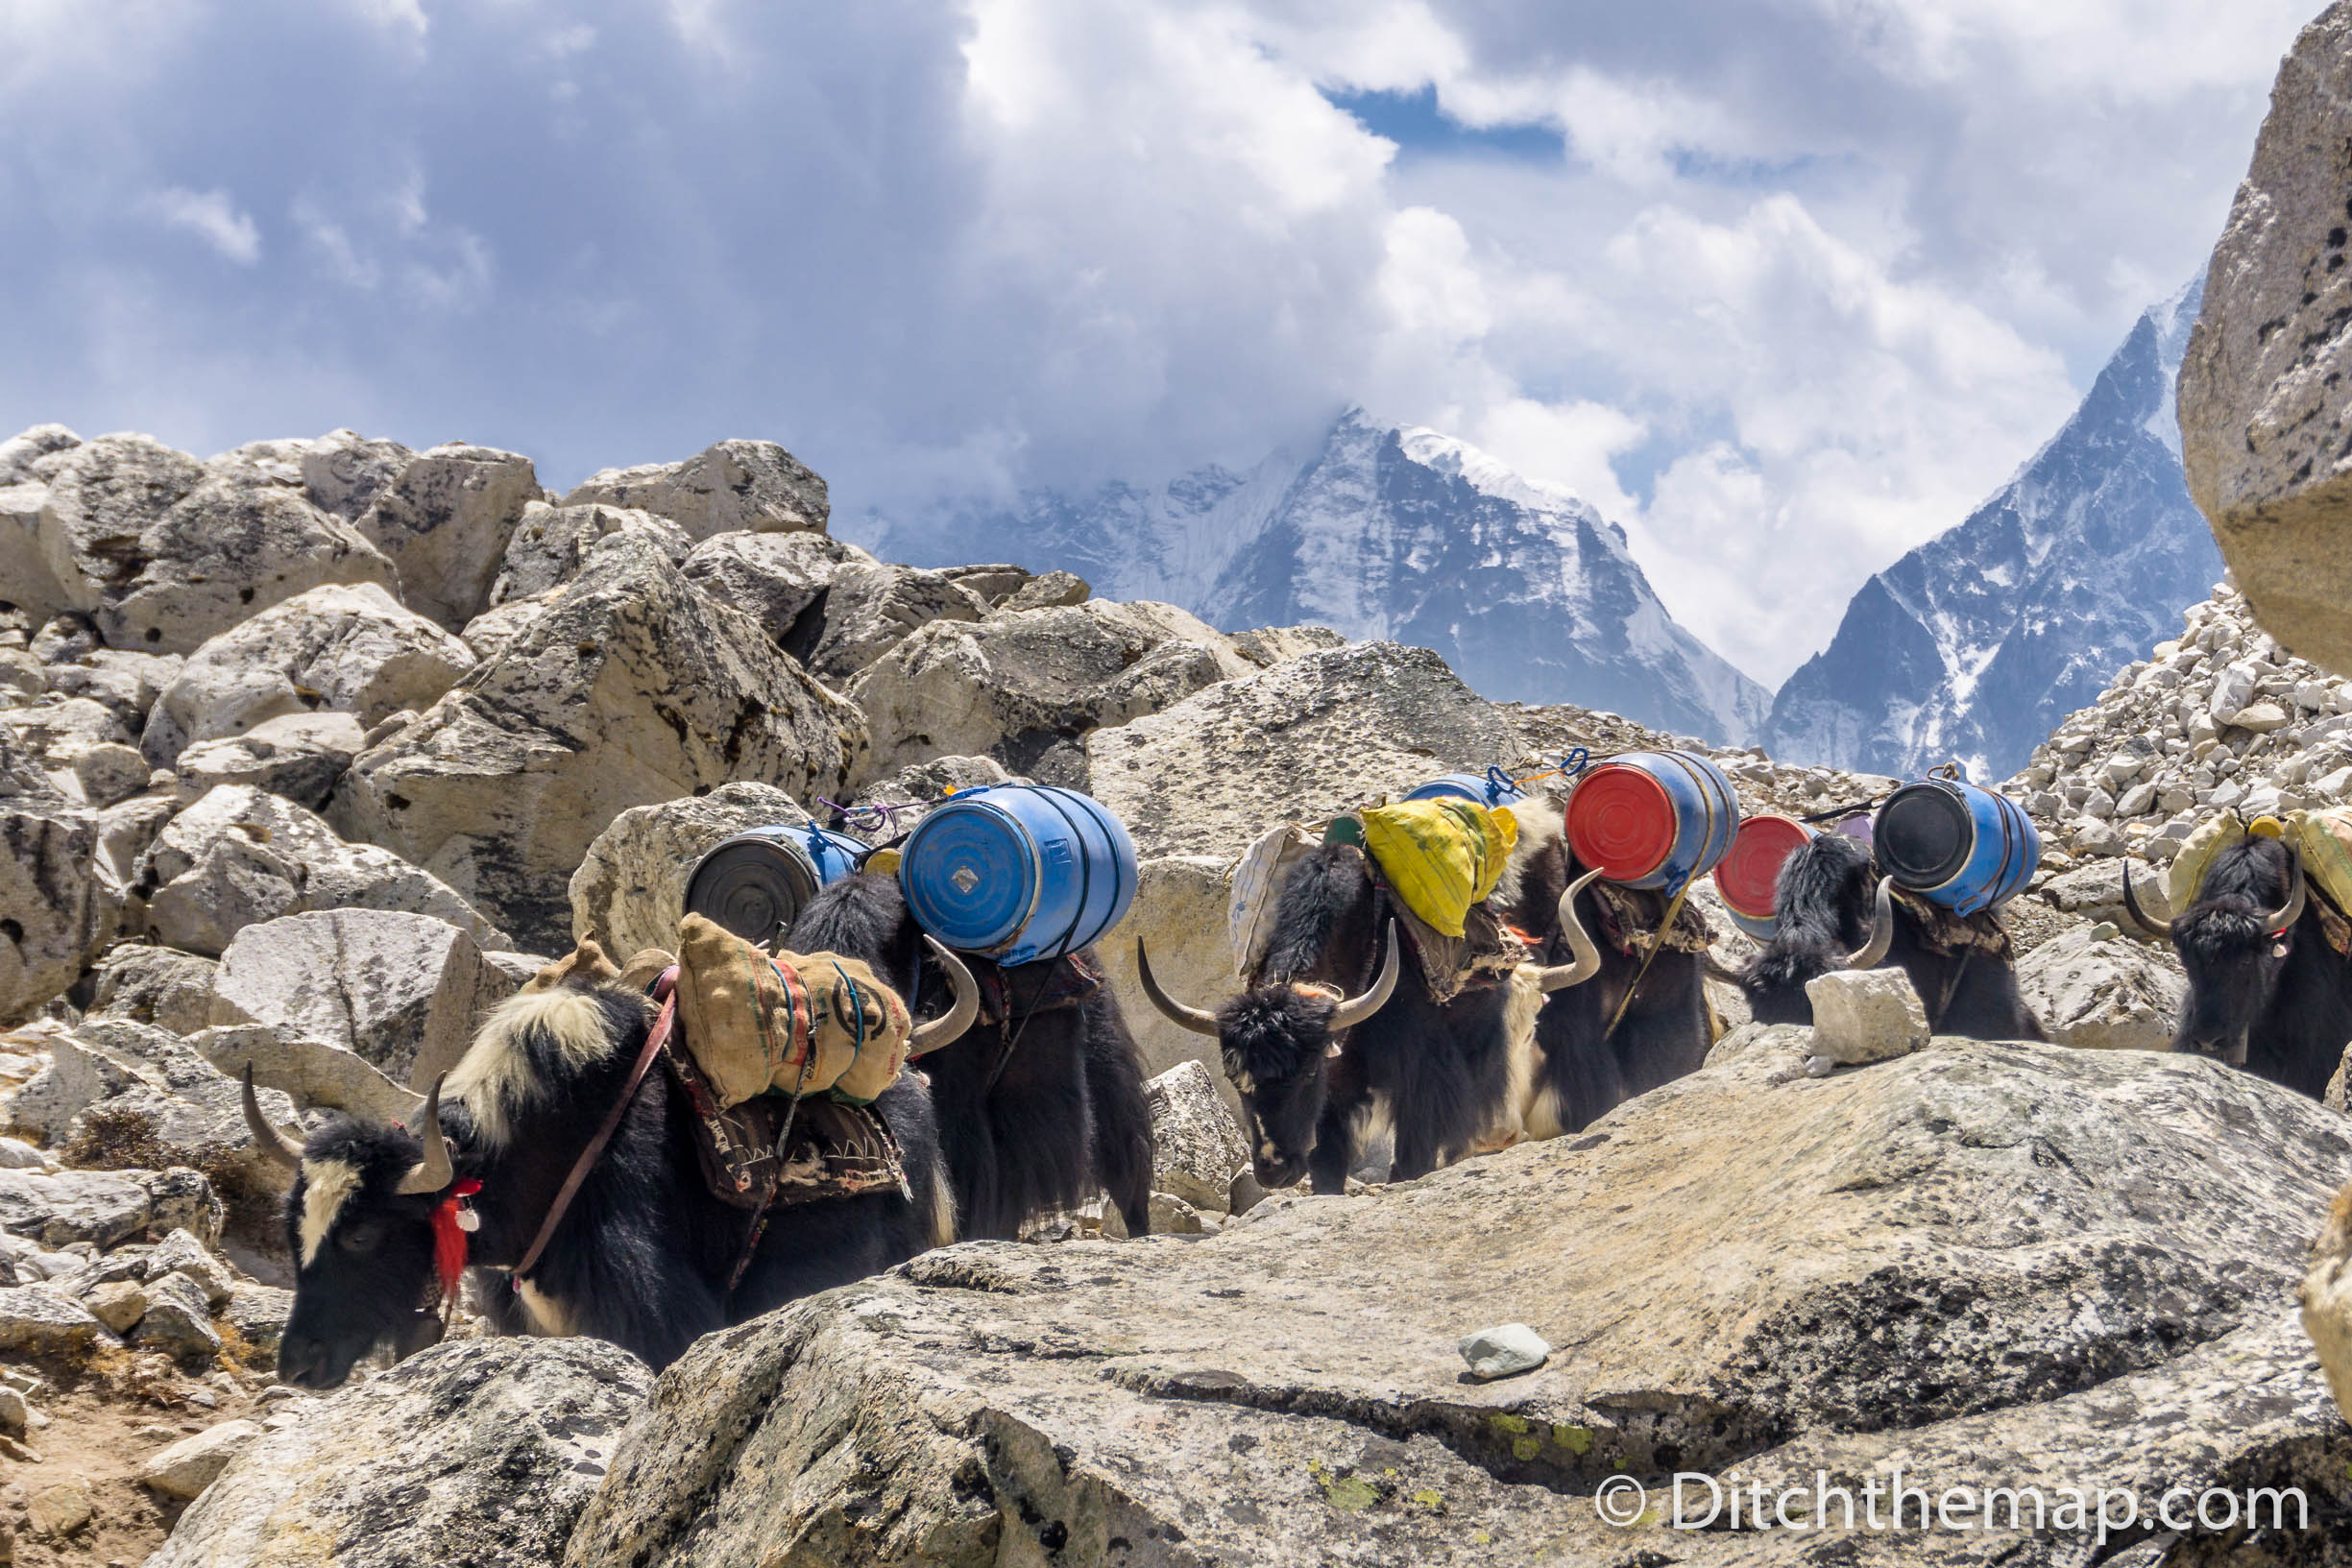 Hiking to Everest Base Camp | Intrepid Times - Travel